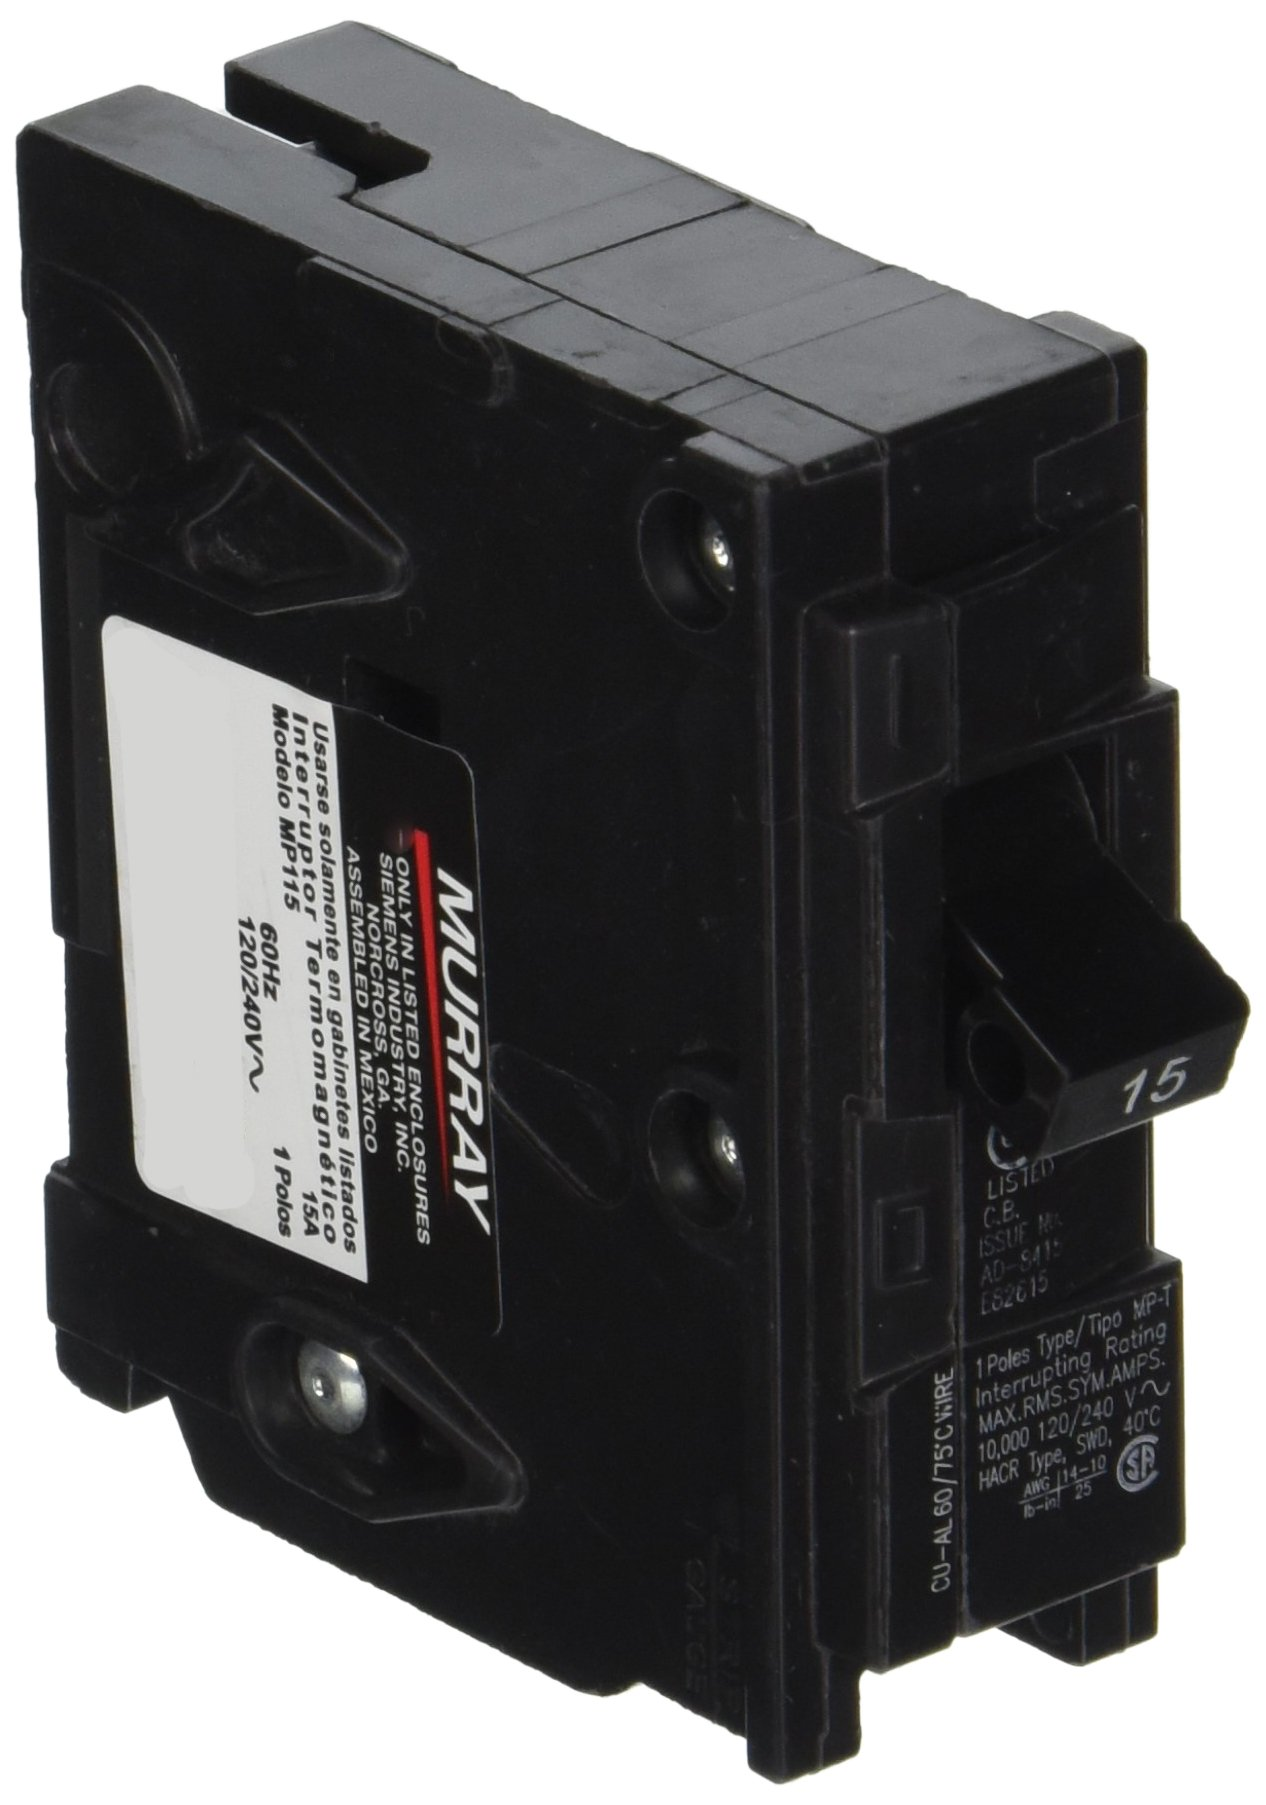 Best Rated In Miniature Circuit Breakers Helpful Customer Reviews Old Schneider Fuse Box Mp115 15 Amp Single Pole Type Mp T Breaker Product Image